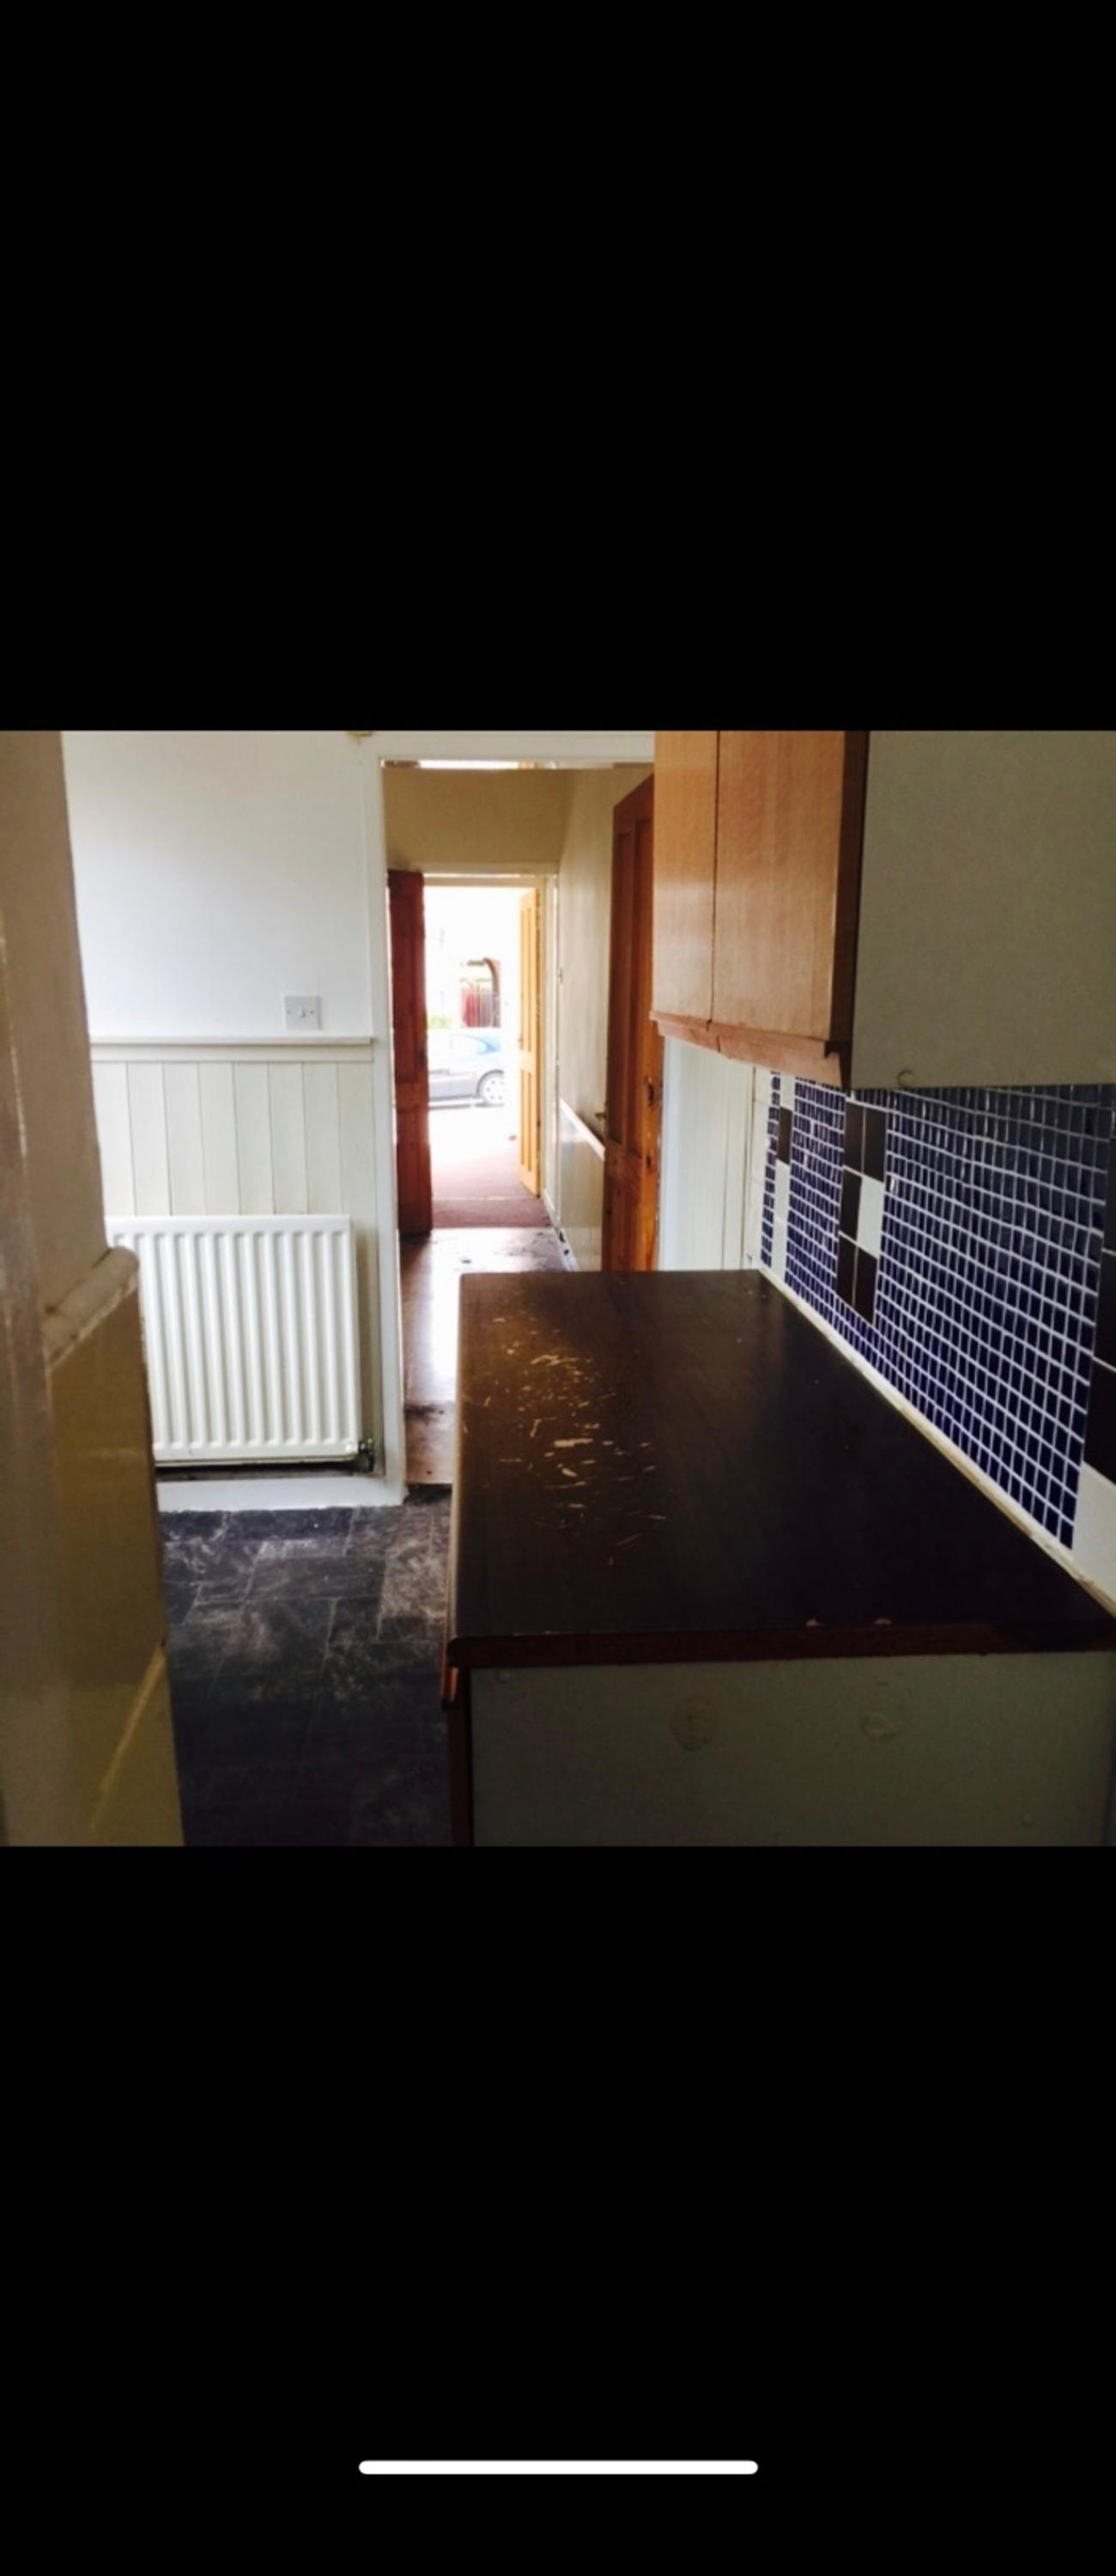 House rent in smethwick 2 bedrooms 2 living rooms Bathroom/kitchen Near hight street bus stops train and tram station Free in April £550 pcm 1 month rent and deposit to be paid No dss private only